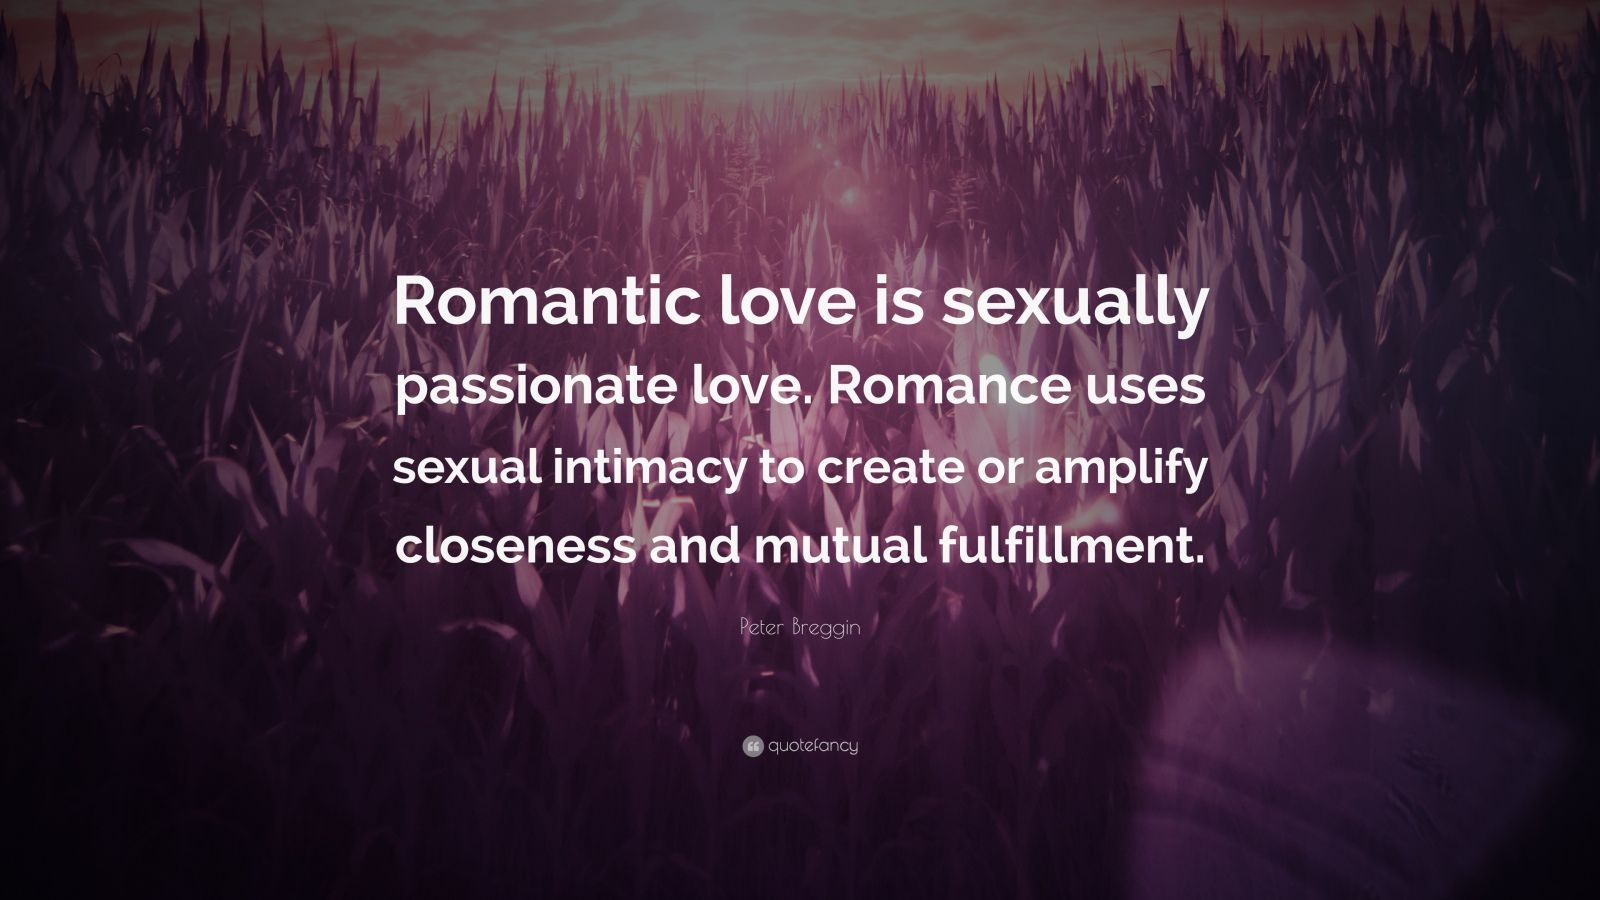 """Peter Breggin Quote: """"Romantic love is sexually passionate love. Romance uses sexual intimacy to create or amplify closeness and mutual fulfillment."""""""